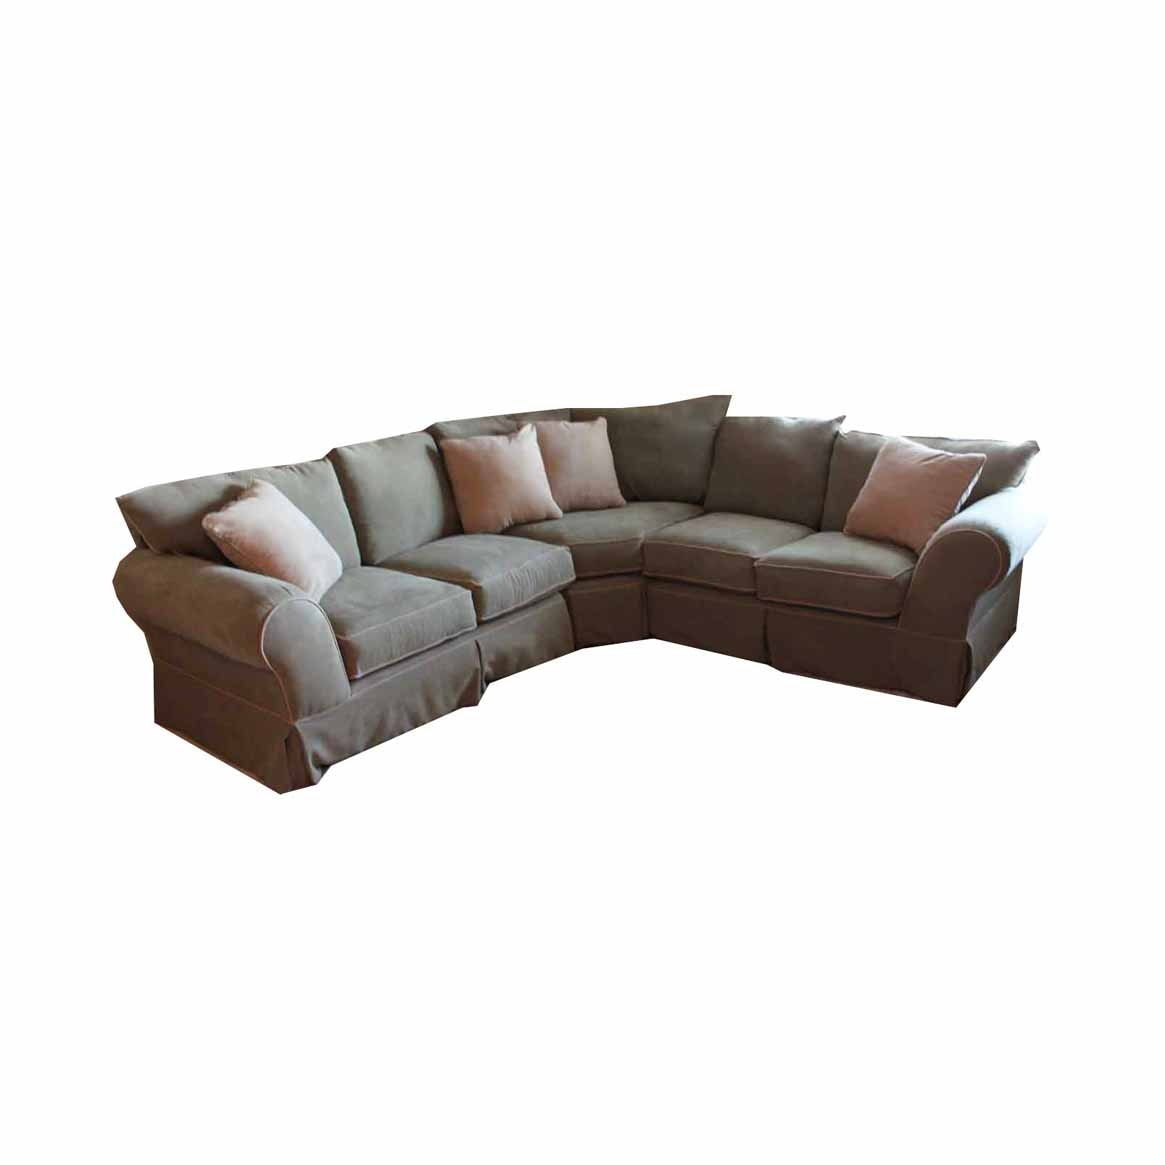 Sofa Express Sectional Sofa ...  sc 1 st  Everything But The House : sofa express sectional - Sectionals, Sofas & Couches